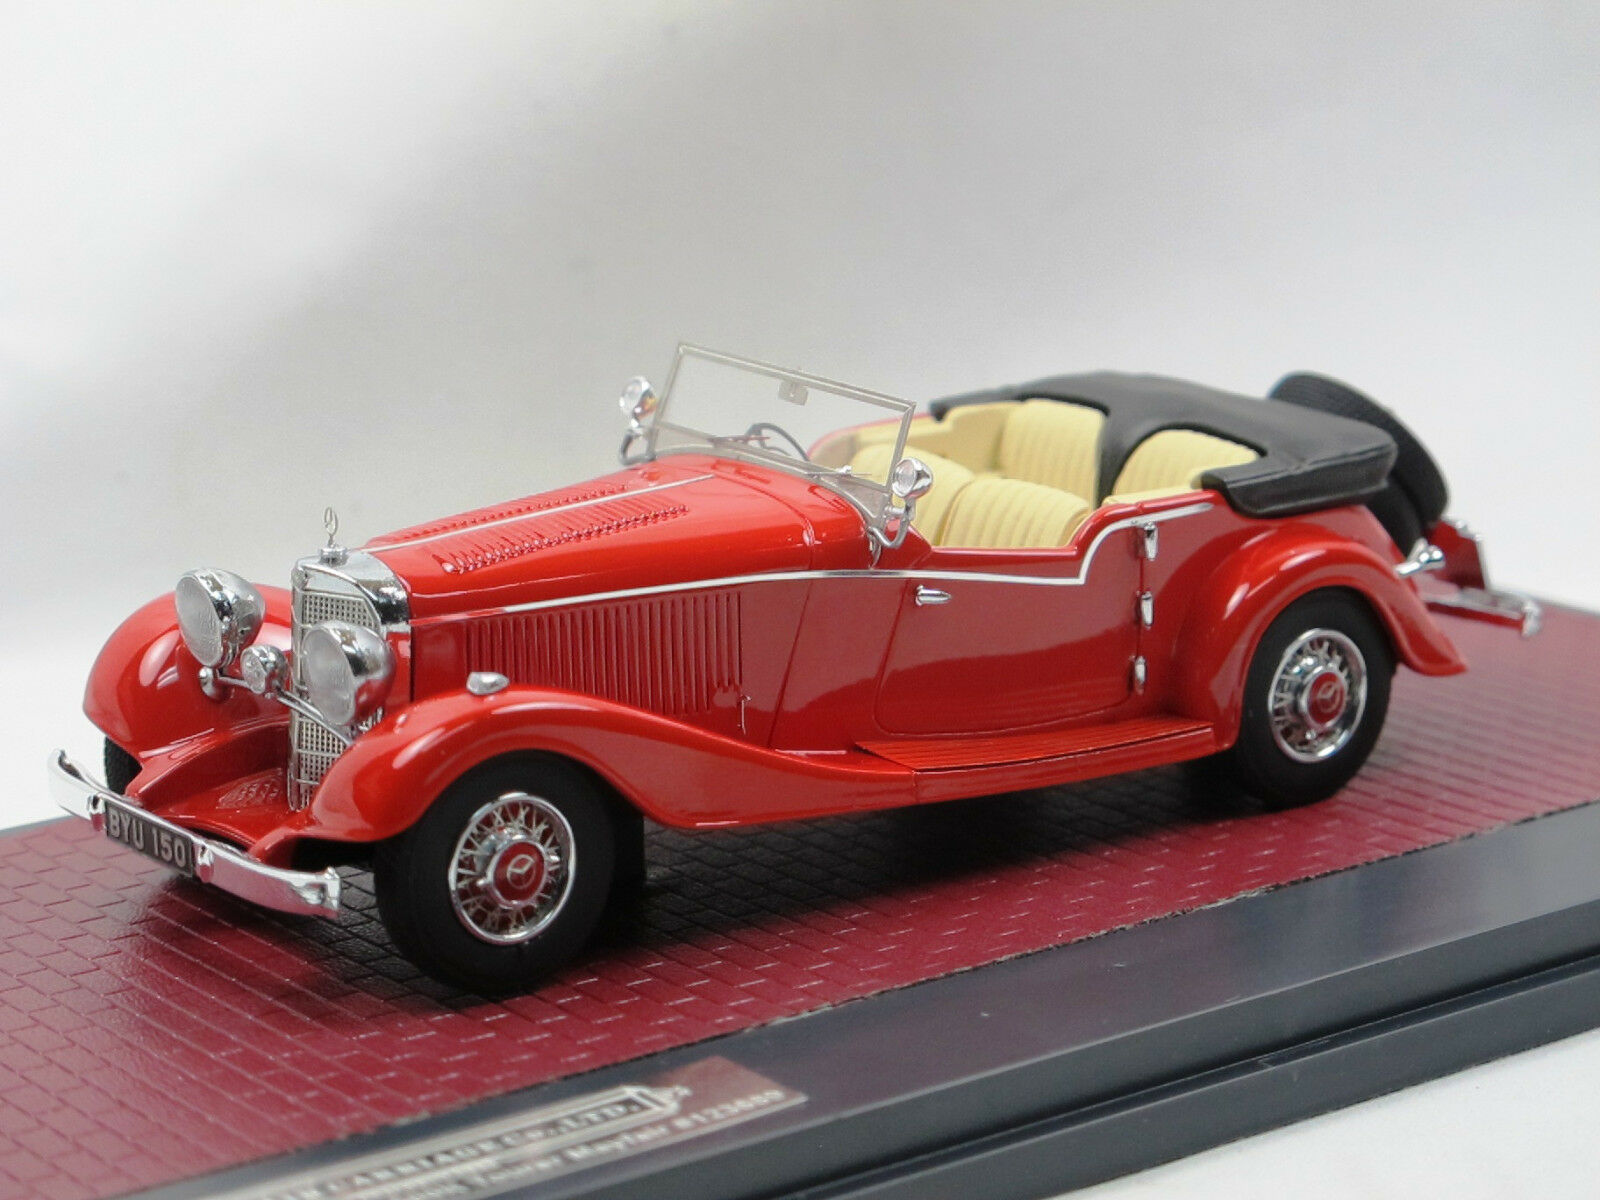 Matrice 1934 Mercedes-Benz 500k Tourer by Mayfair Open 1 43 limited edition 240